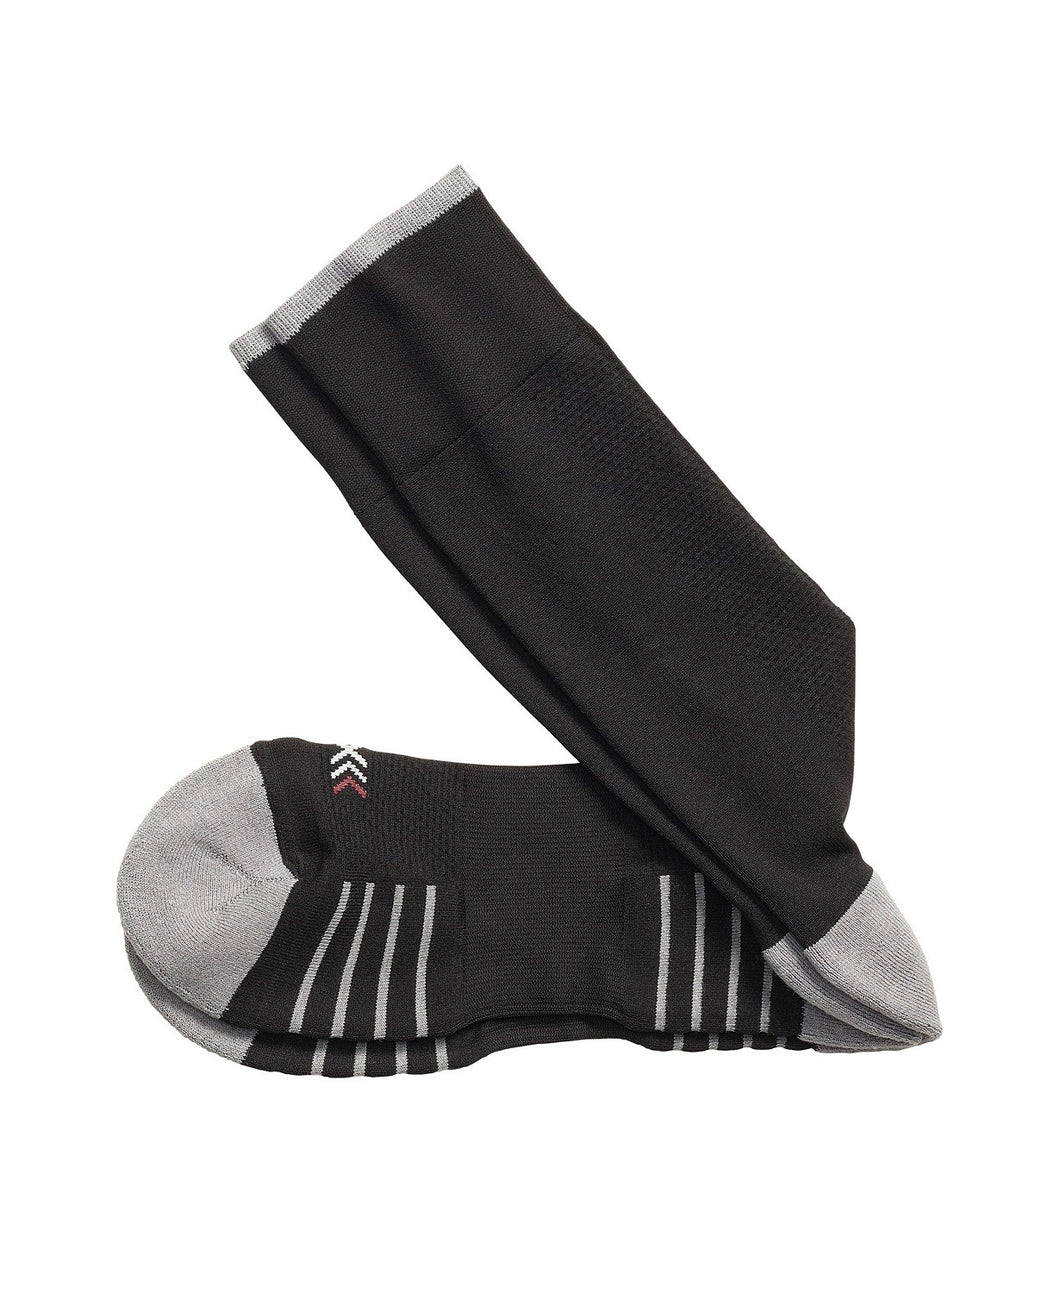 JOHNSTON&MURPHY XC4 Performance Crew Sock